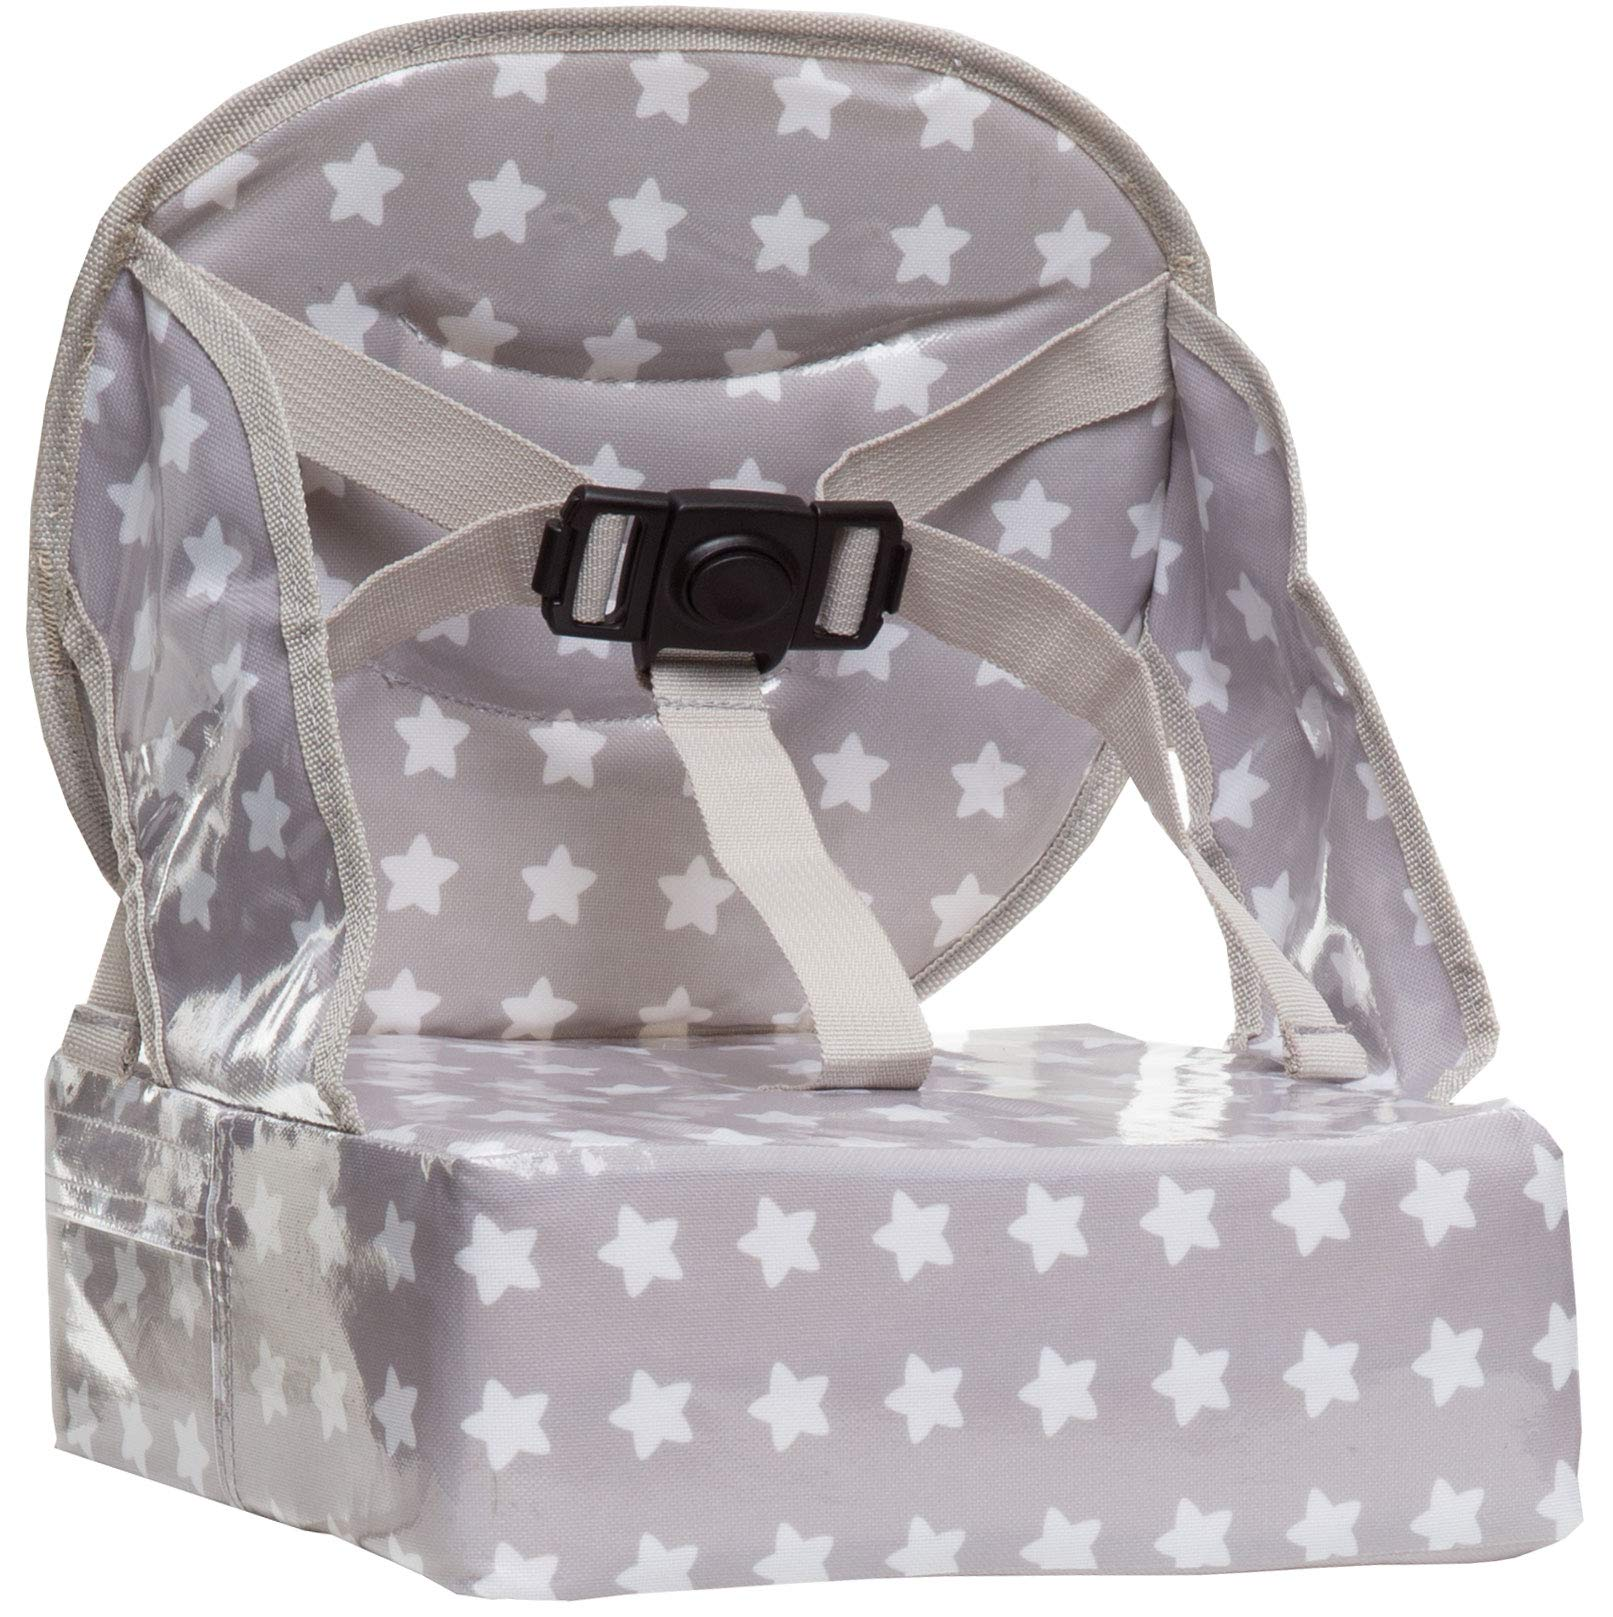 High Quality - Easy to Clean - Keeps Baby Upright - Safe & Secure